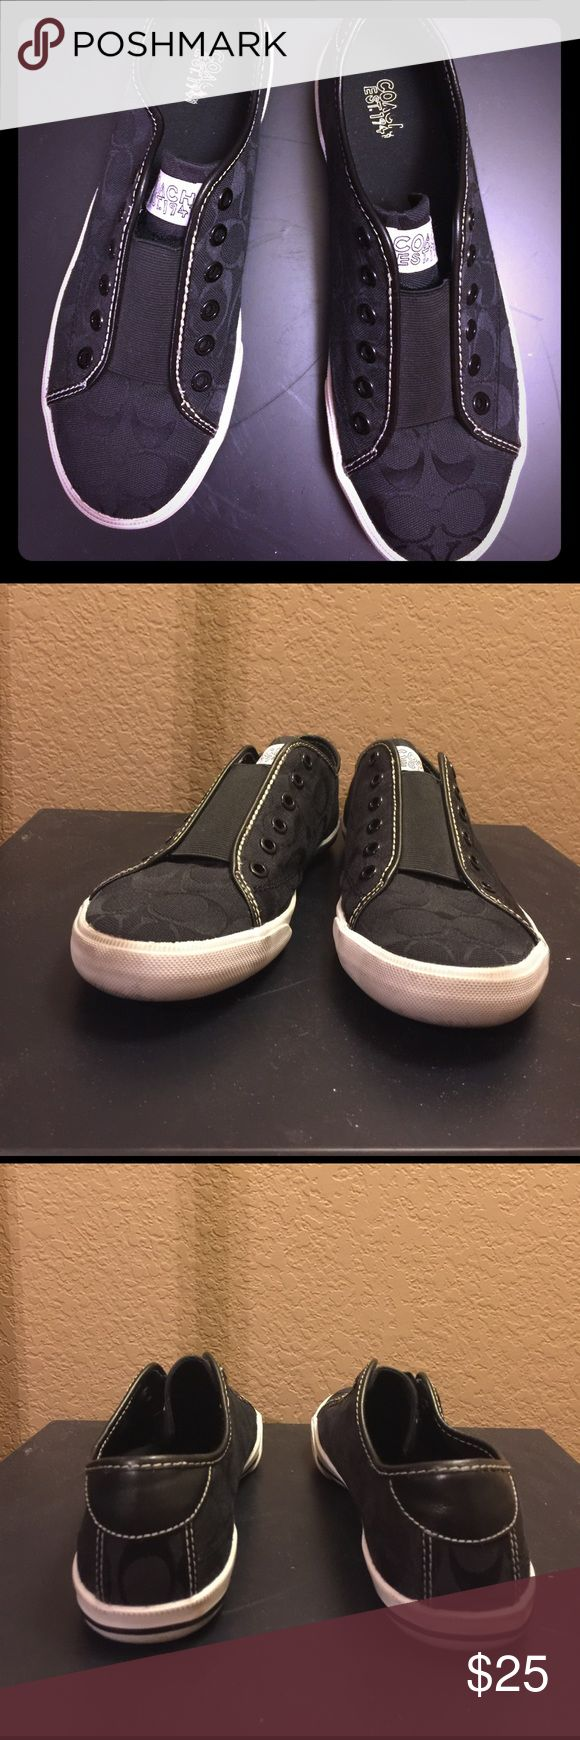 Barely worn Coach slip on tennis shoes size 10 Almost new Coach slip on tennis shoe size 10- white part has some markings but I'm sure someone who knows how to clean and take care of tennis shoes could make them look brand new again! Coach Shoes Athletic Shoes